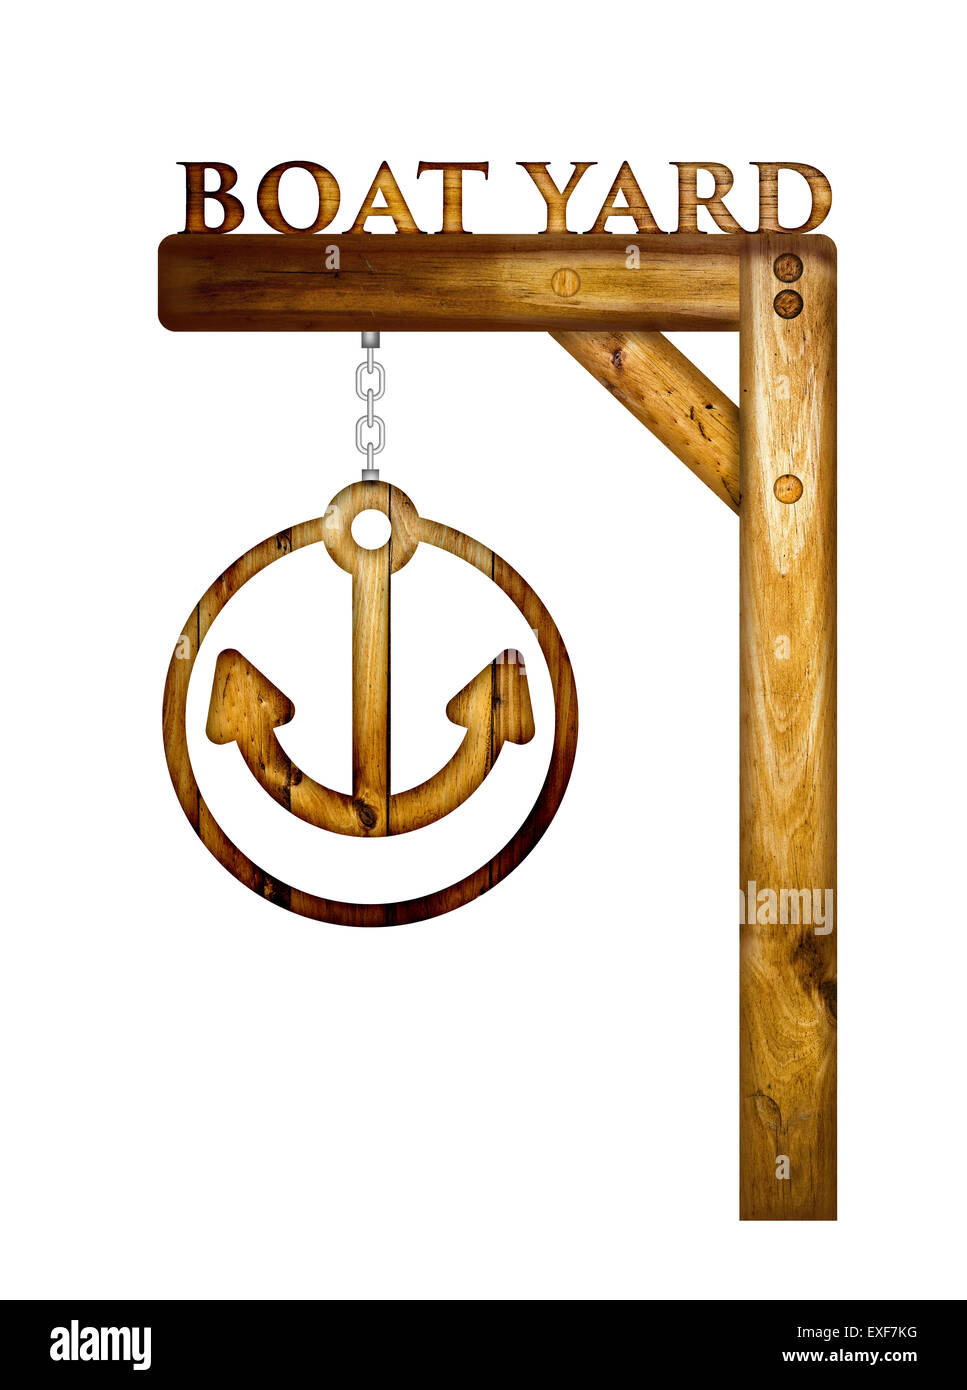 Wooden rusty boat yard sign over a white background. Stock Photo